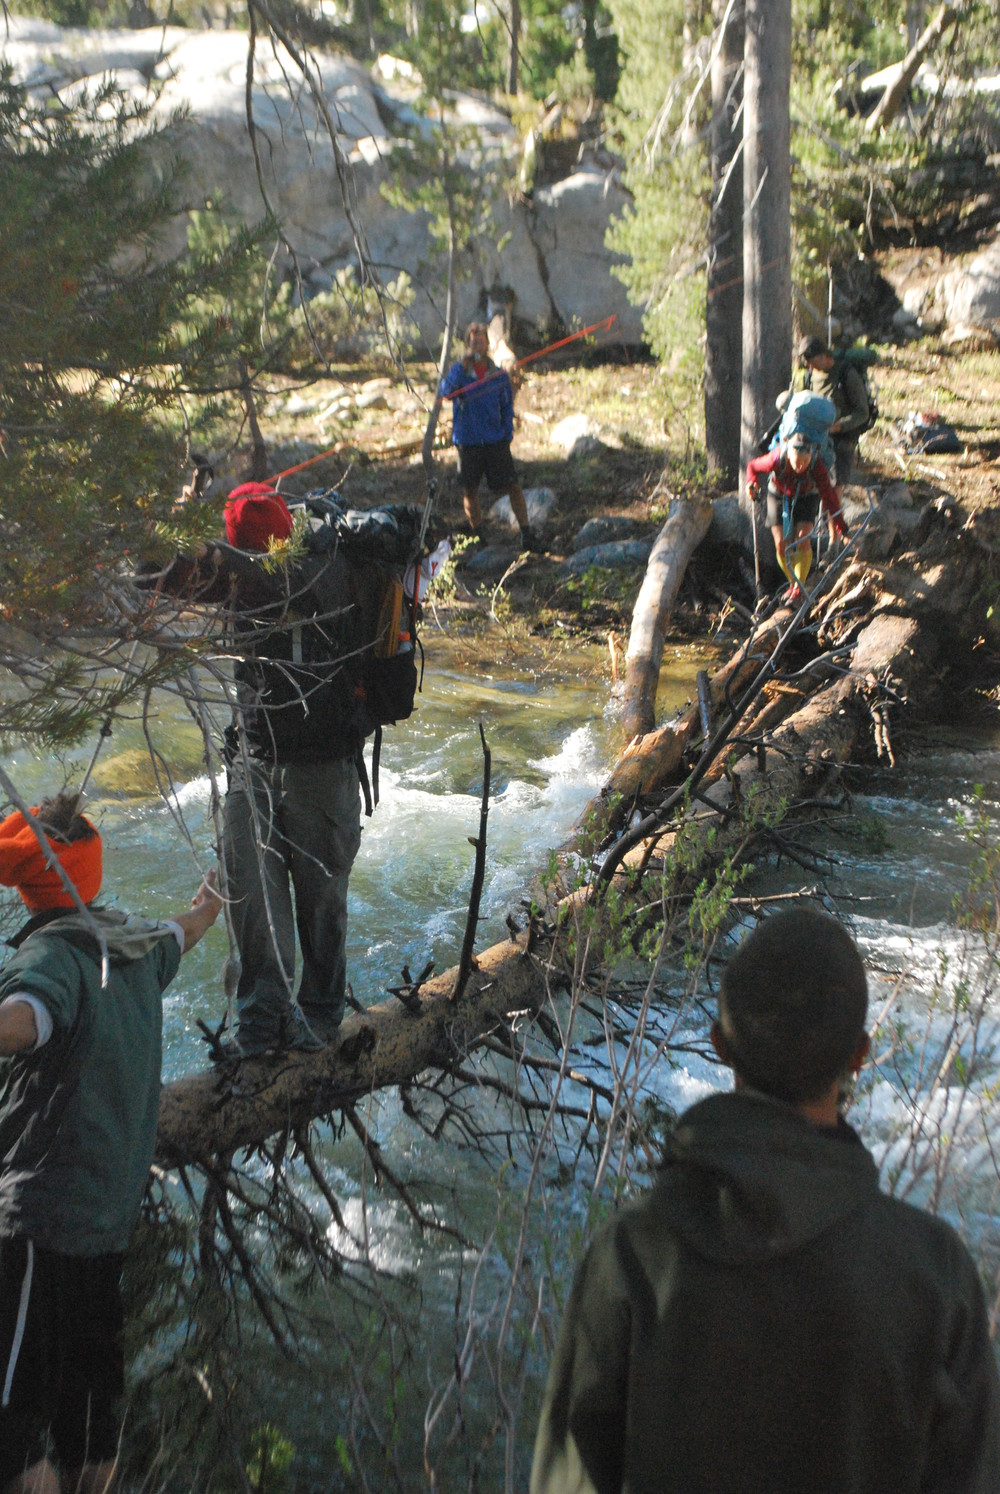 Crossing Rancheria Creek with rope overhead for balance.